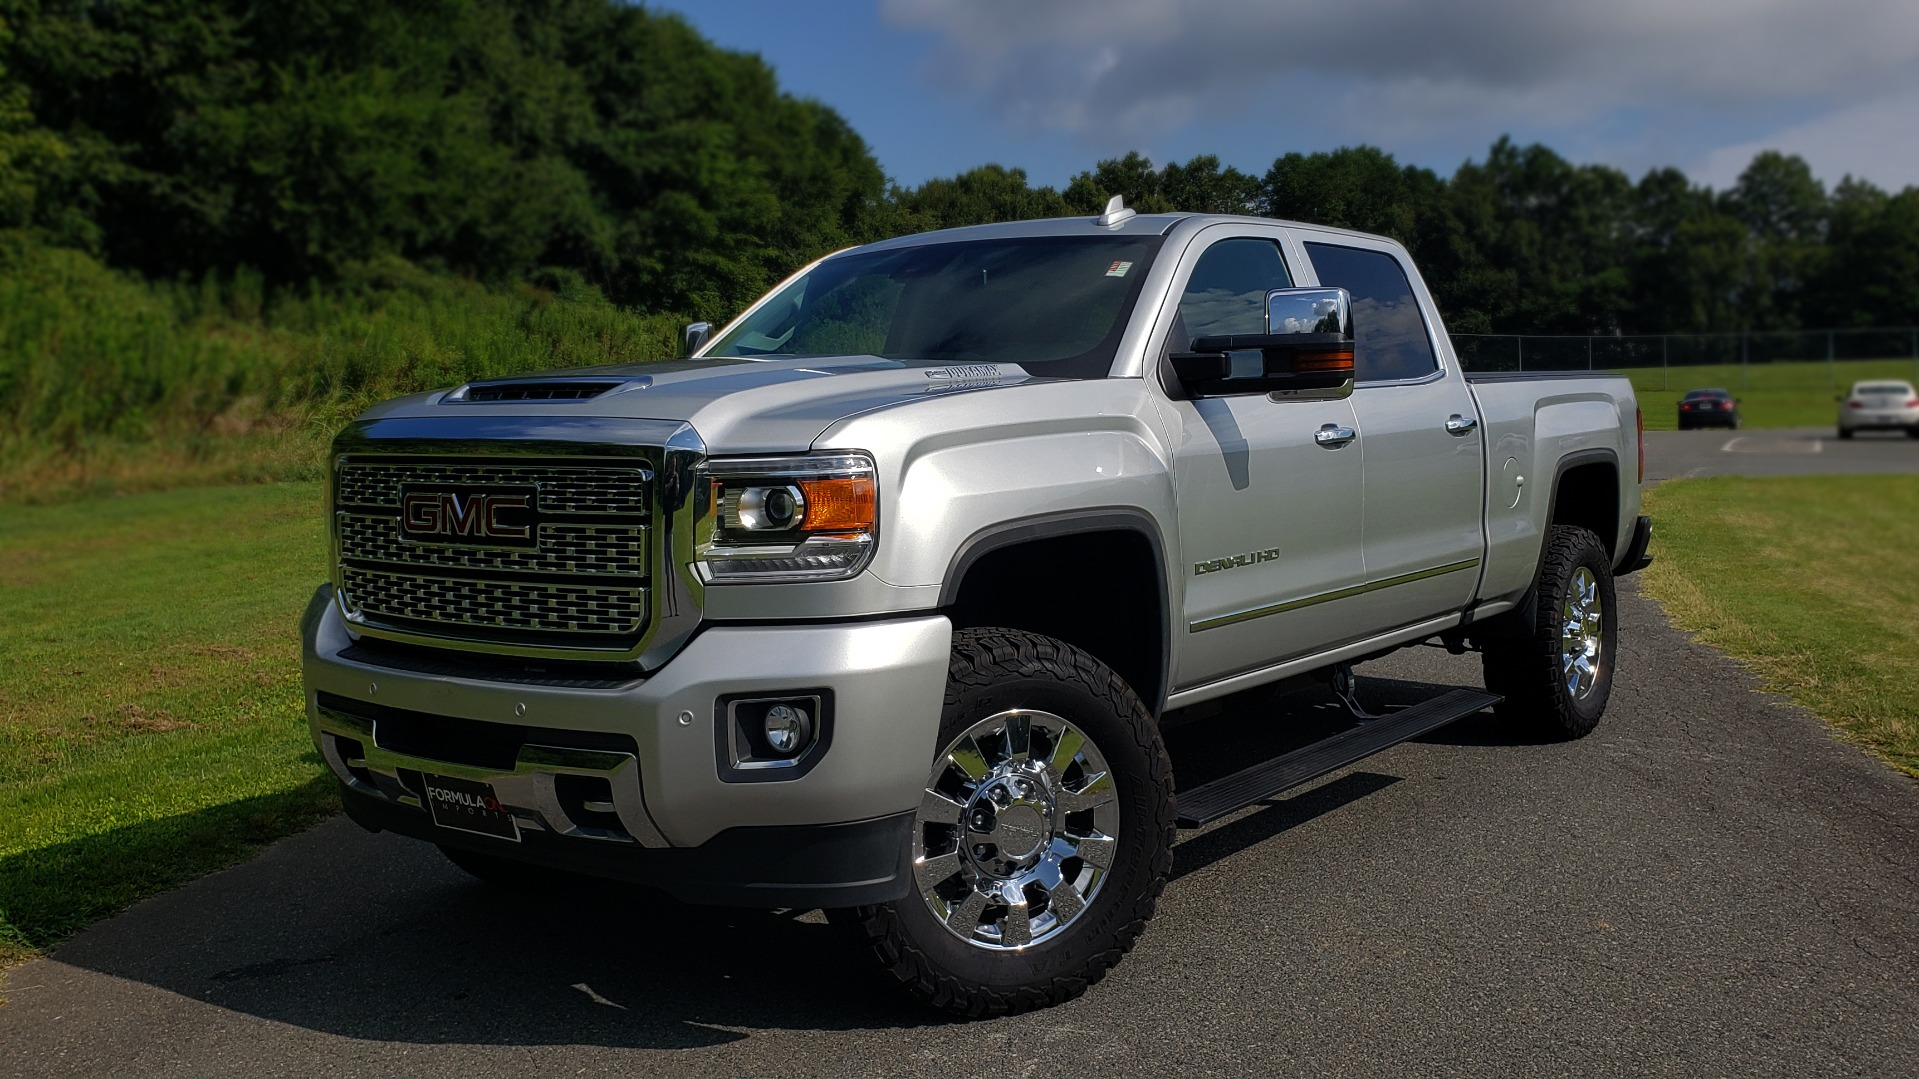 Used 2018 GMC SIERRA 2500HD DENALI 4WD / 6.6L DURAMAX / NAV / SUNROOF / BOSE / REARVIEW for sale Sold at Formula Imports in Charlotte NC 28227 1